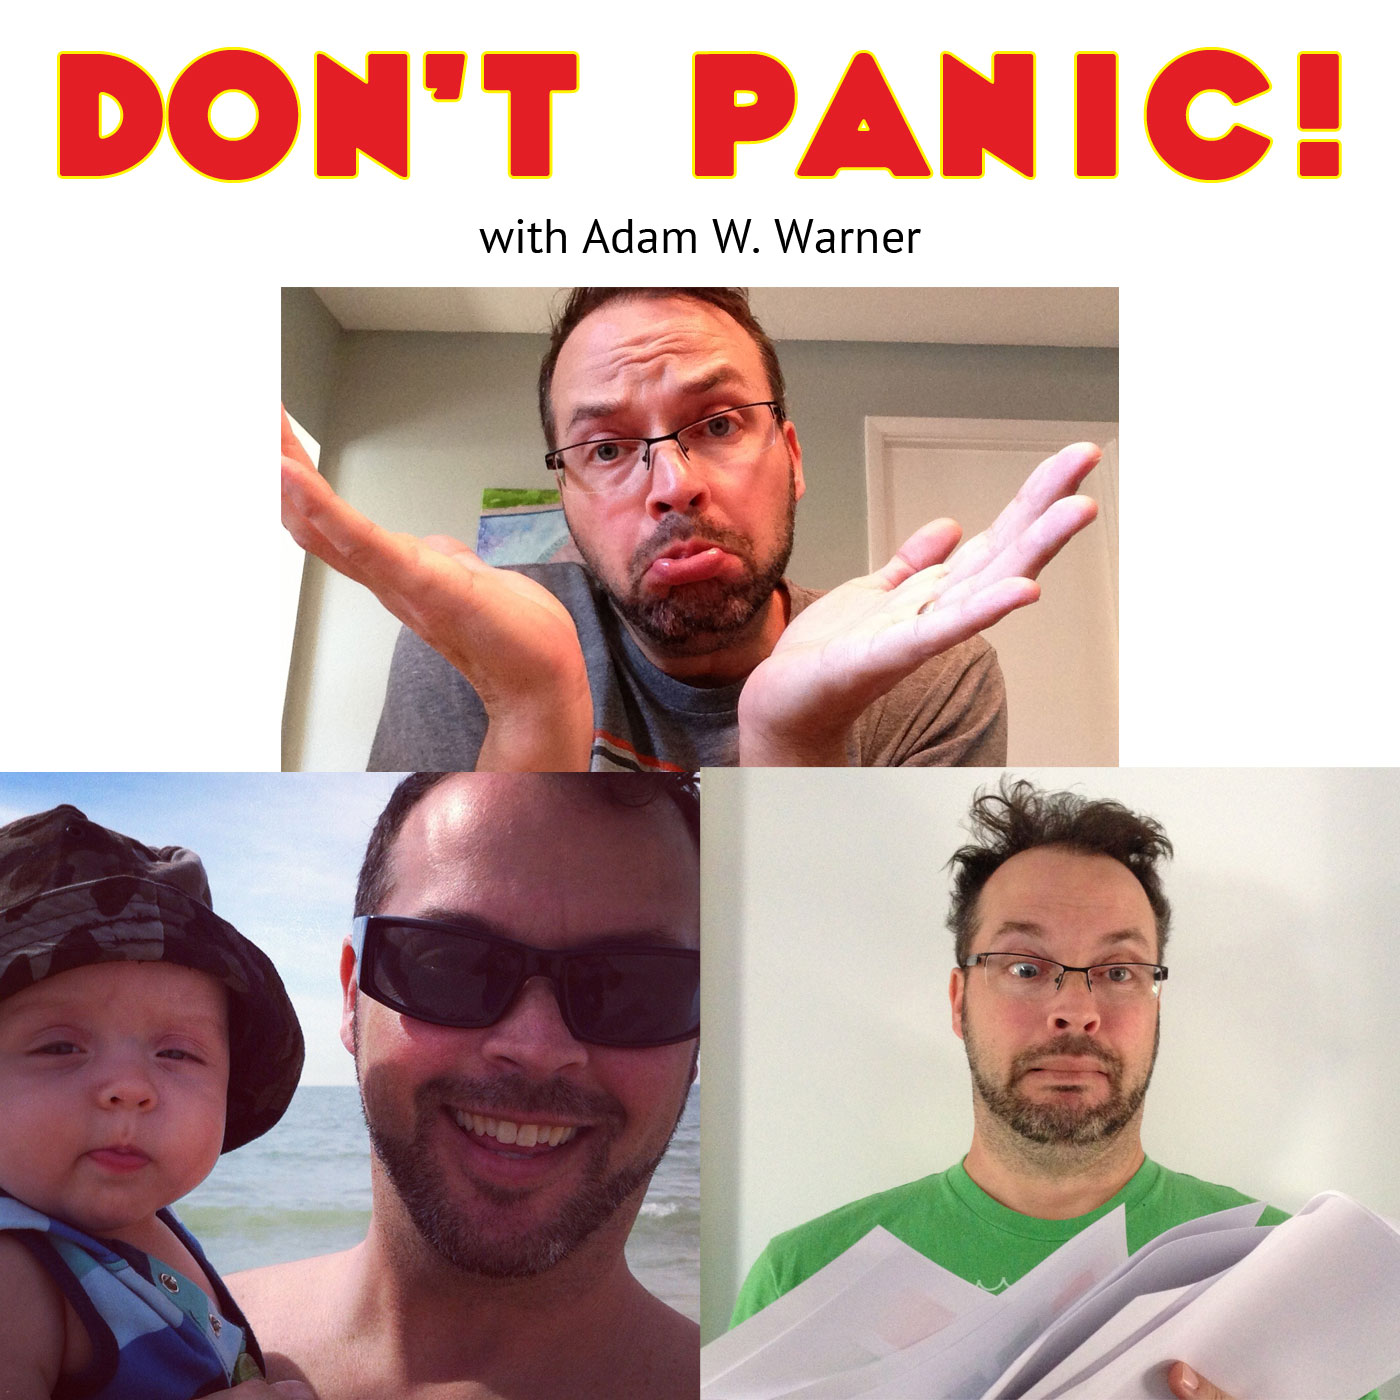 Don't Panic! with Adam W. Warner